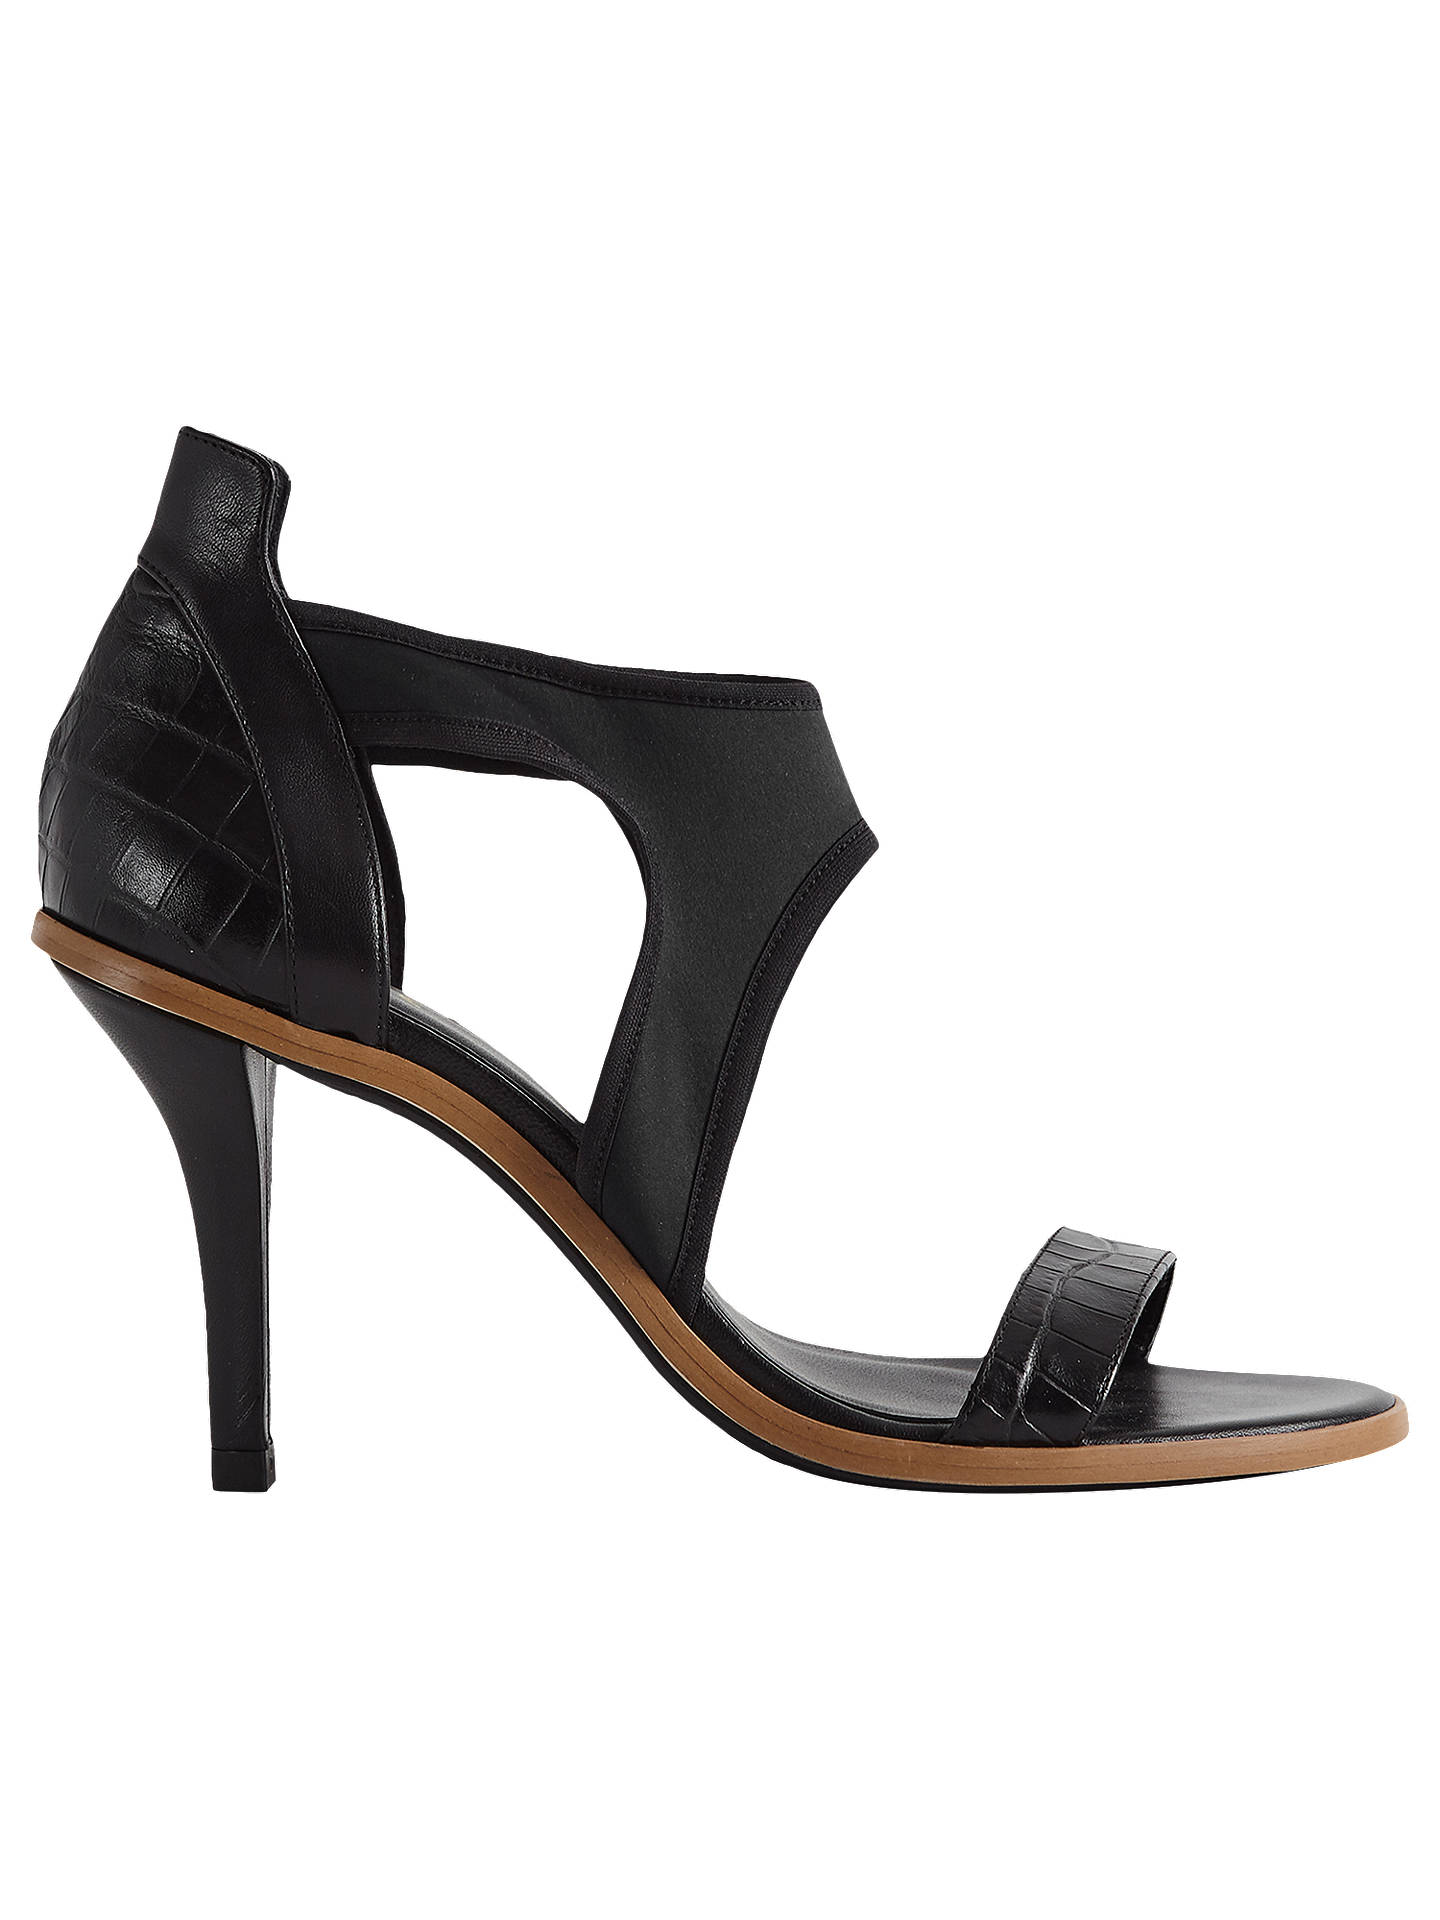 BuyReiss Camille High-Heeled Strappy Sandals, Black, 5 Online at johnlewis.com